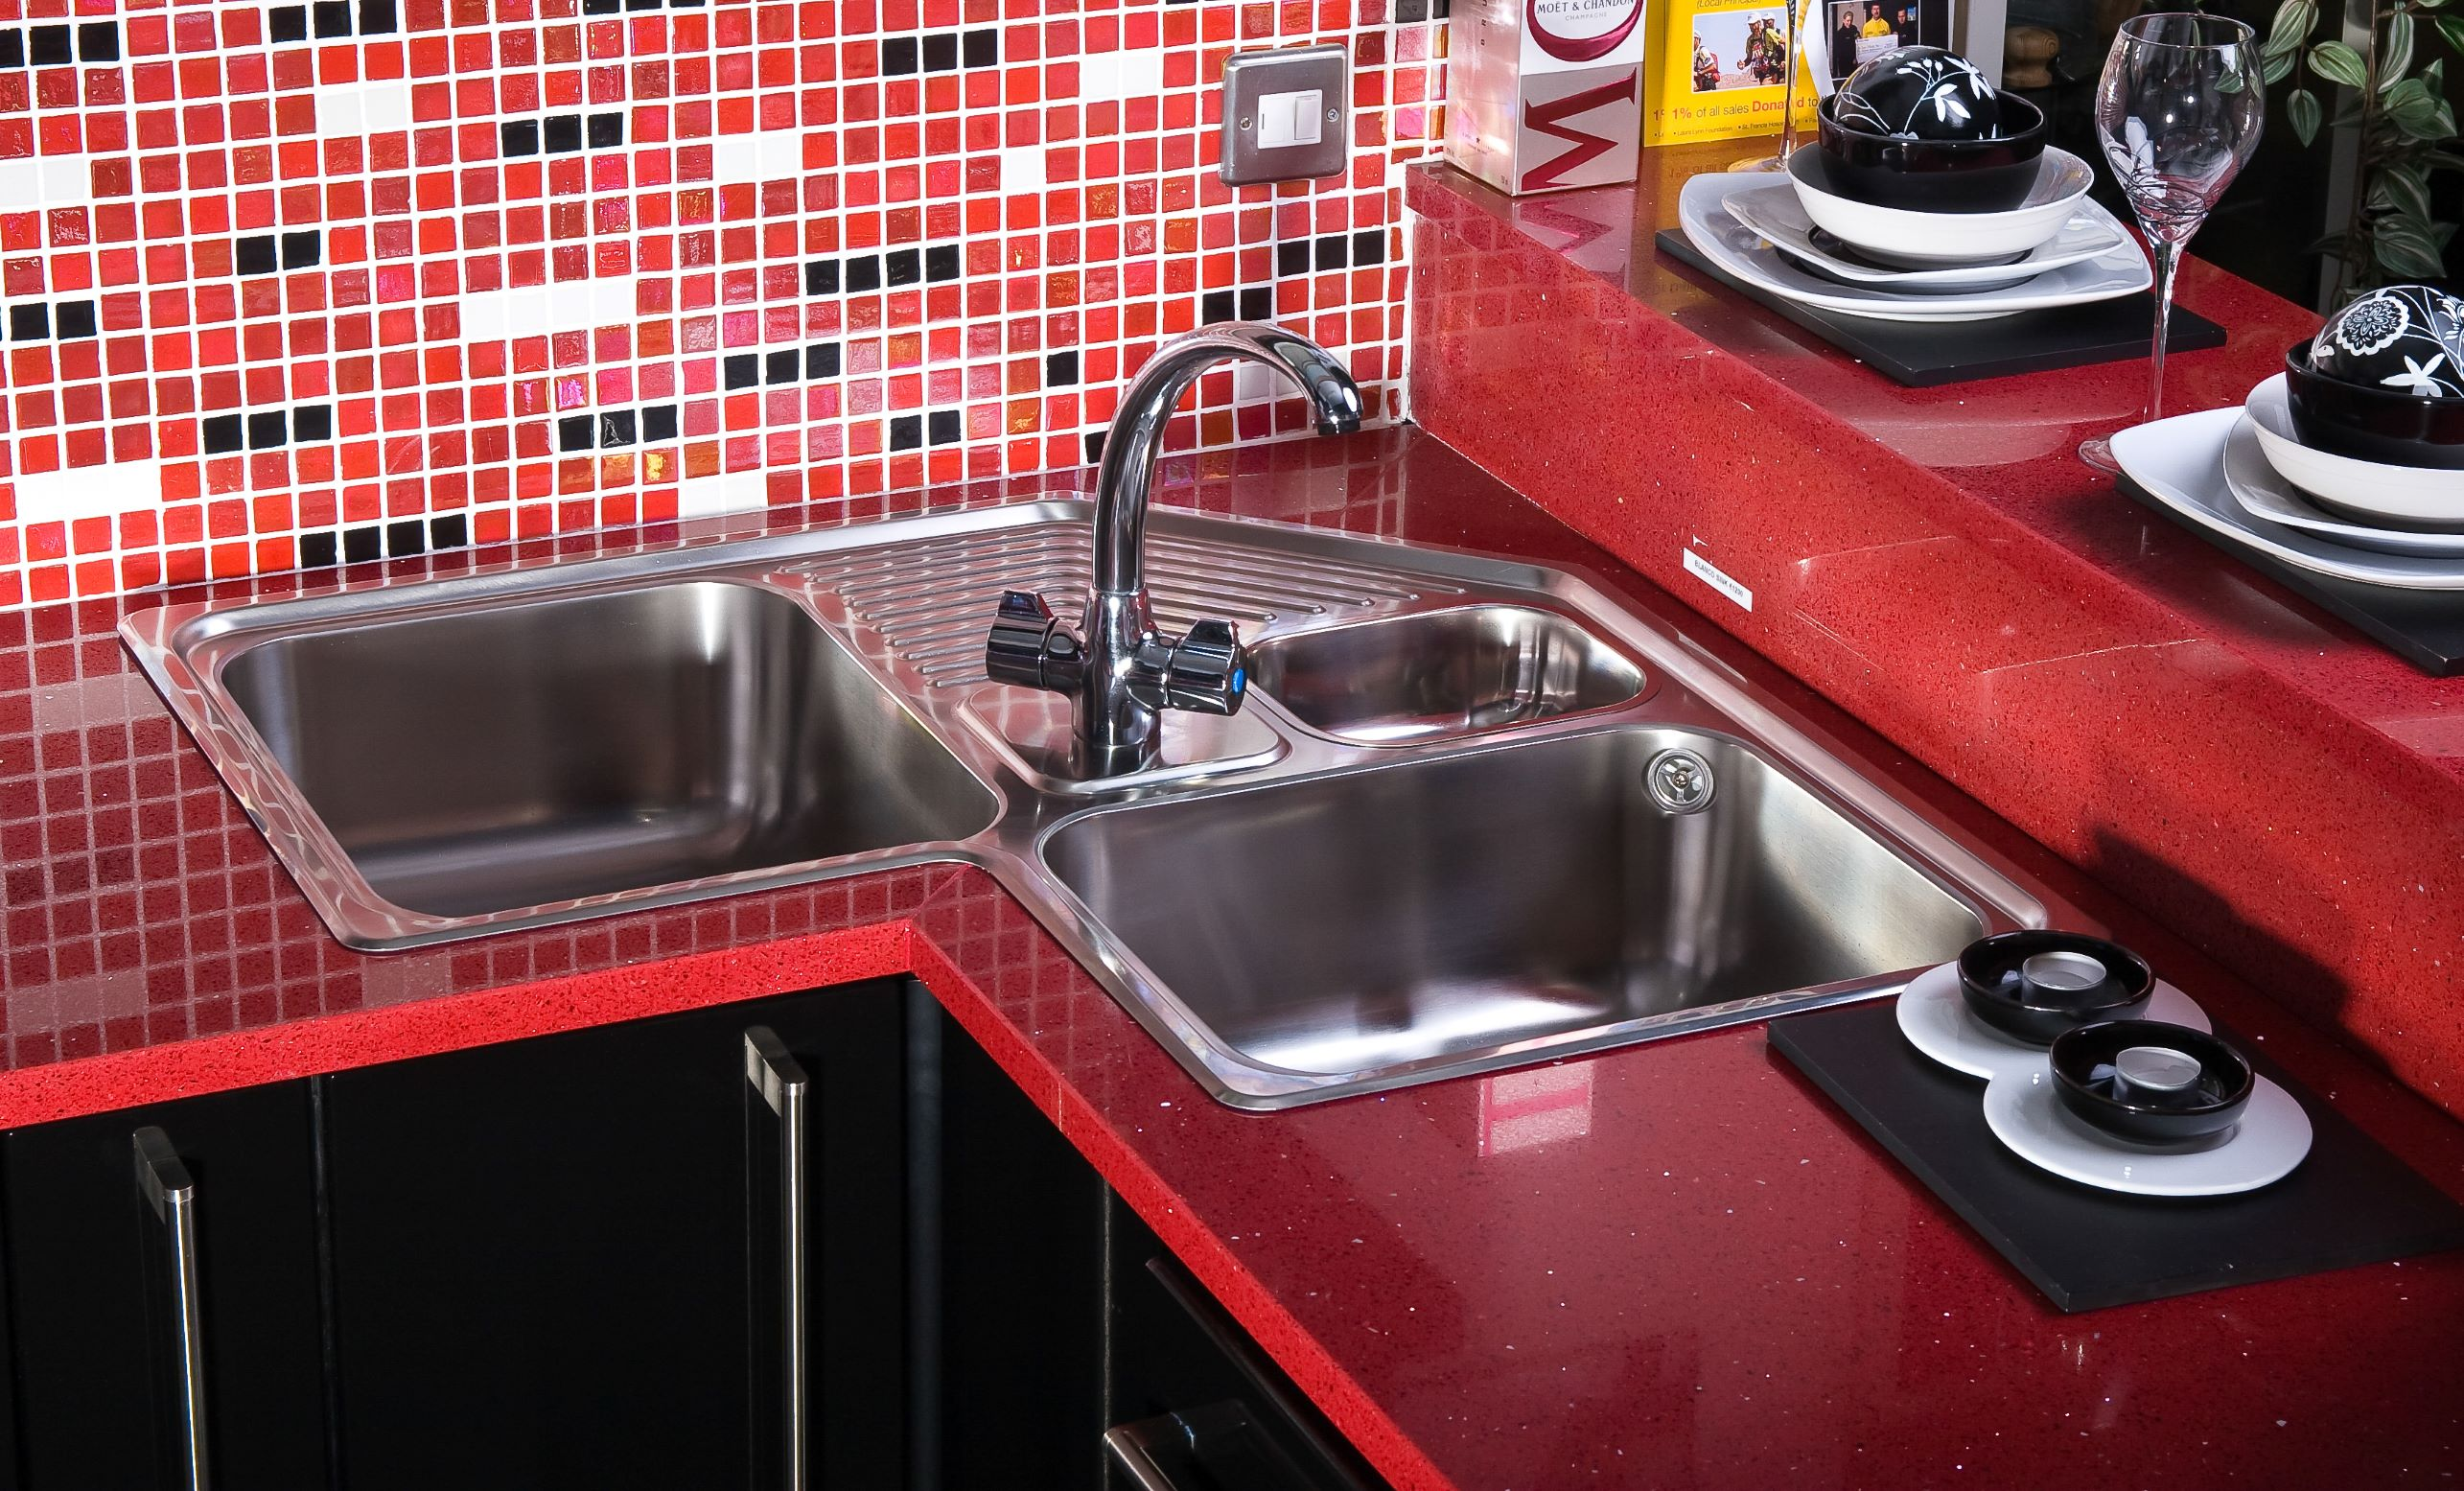 Fun Kitchen Countertop Options You May Want To Consider